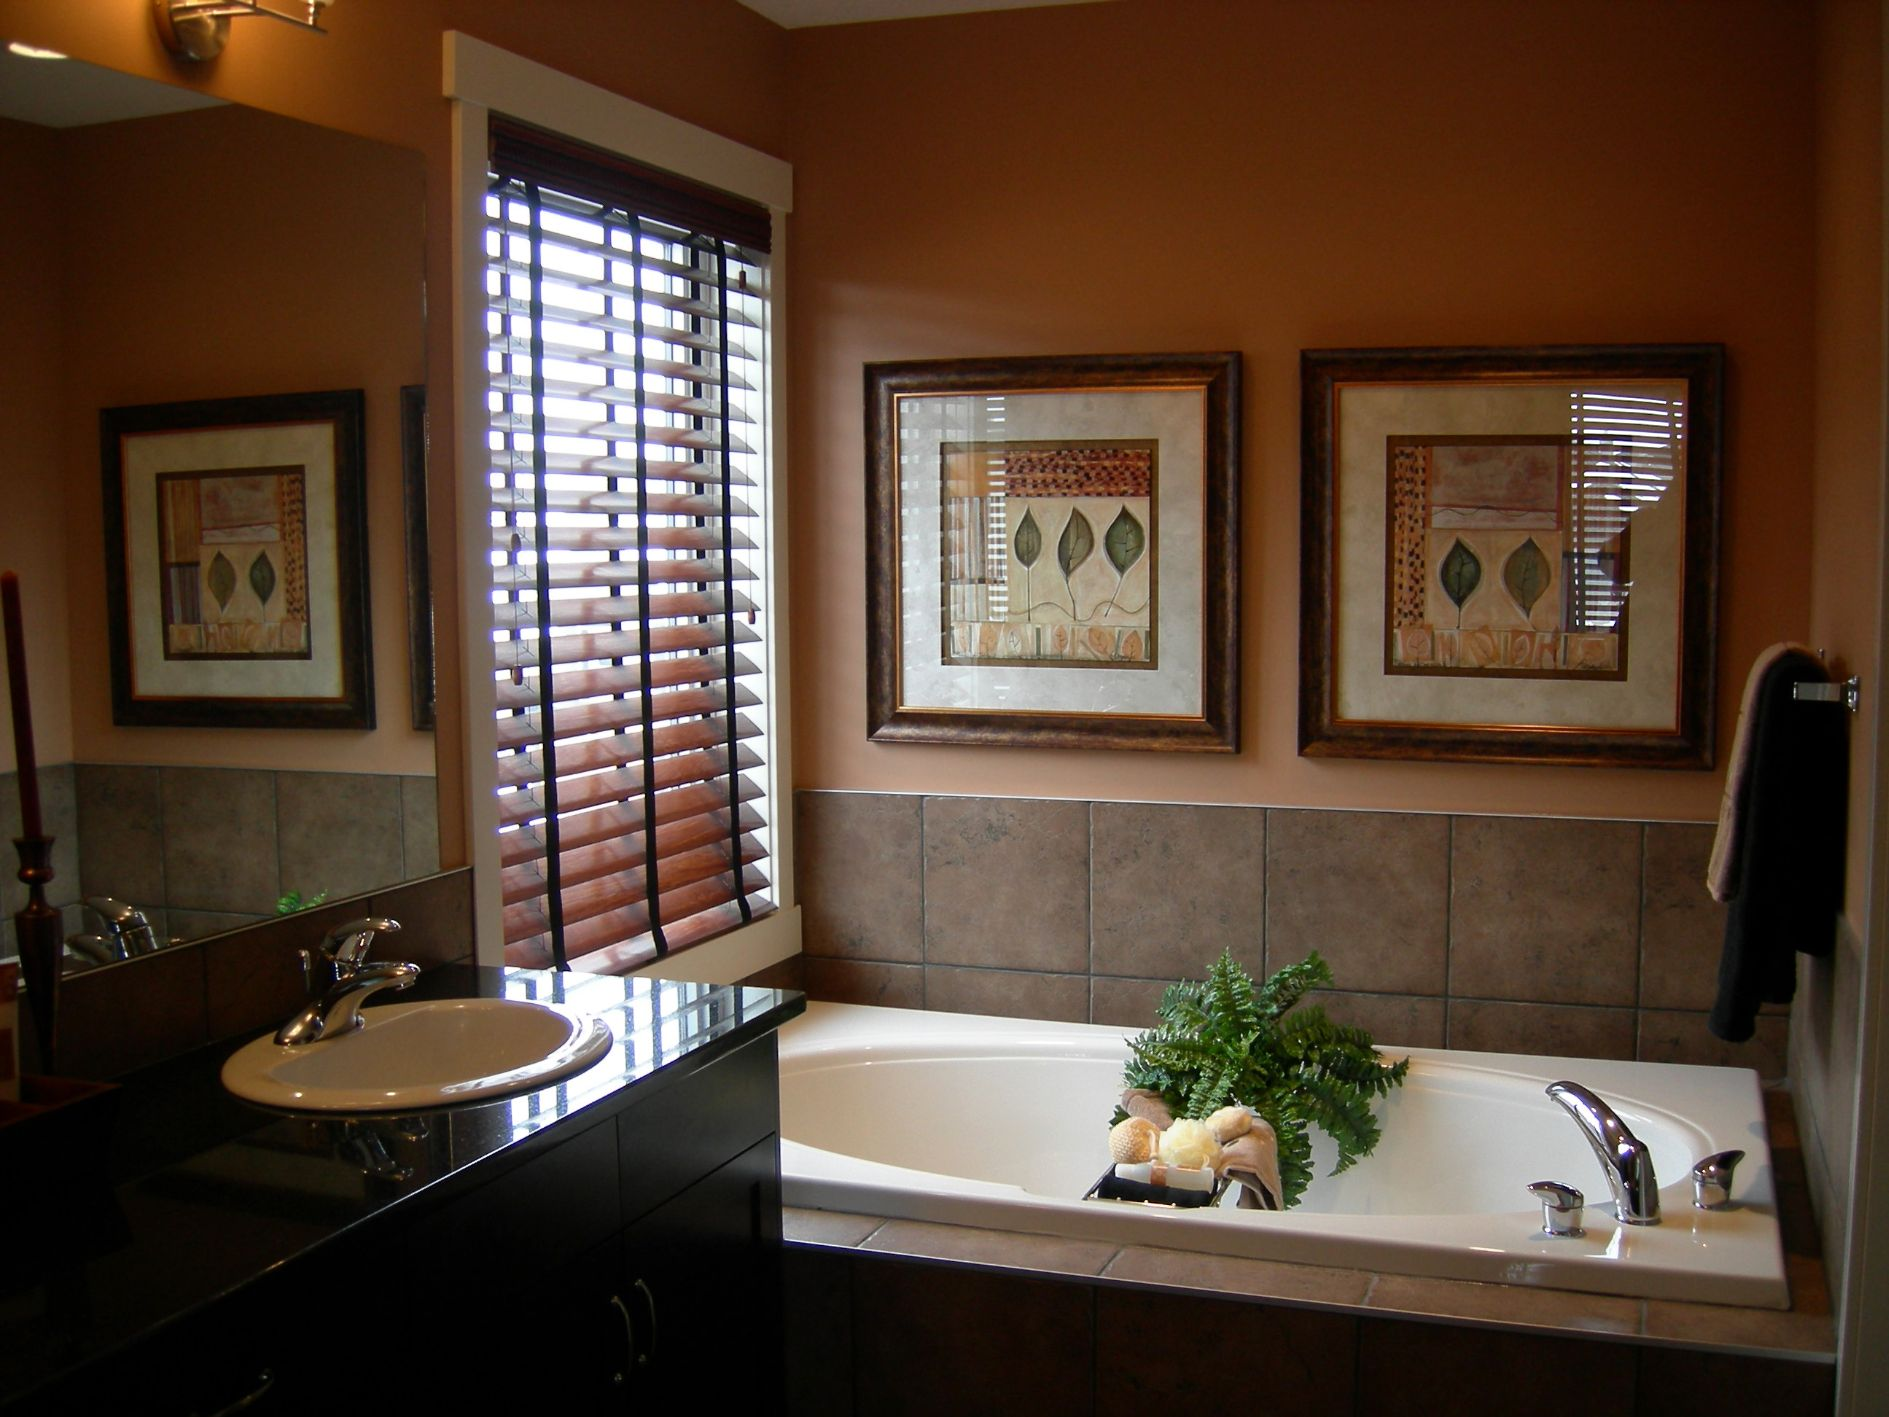 tan wall with glass window and faux wood blinds plus bathup and kitchen cabinet with sink and faucet for bathroom decor ideas